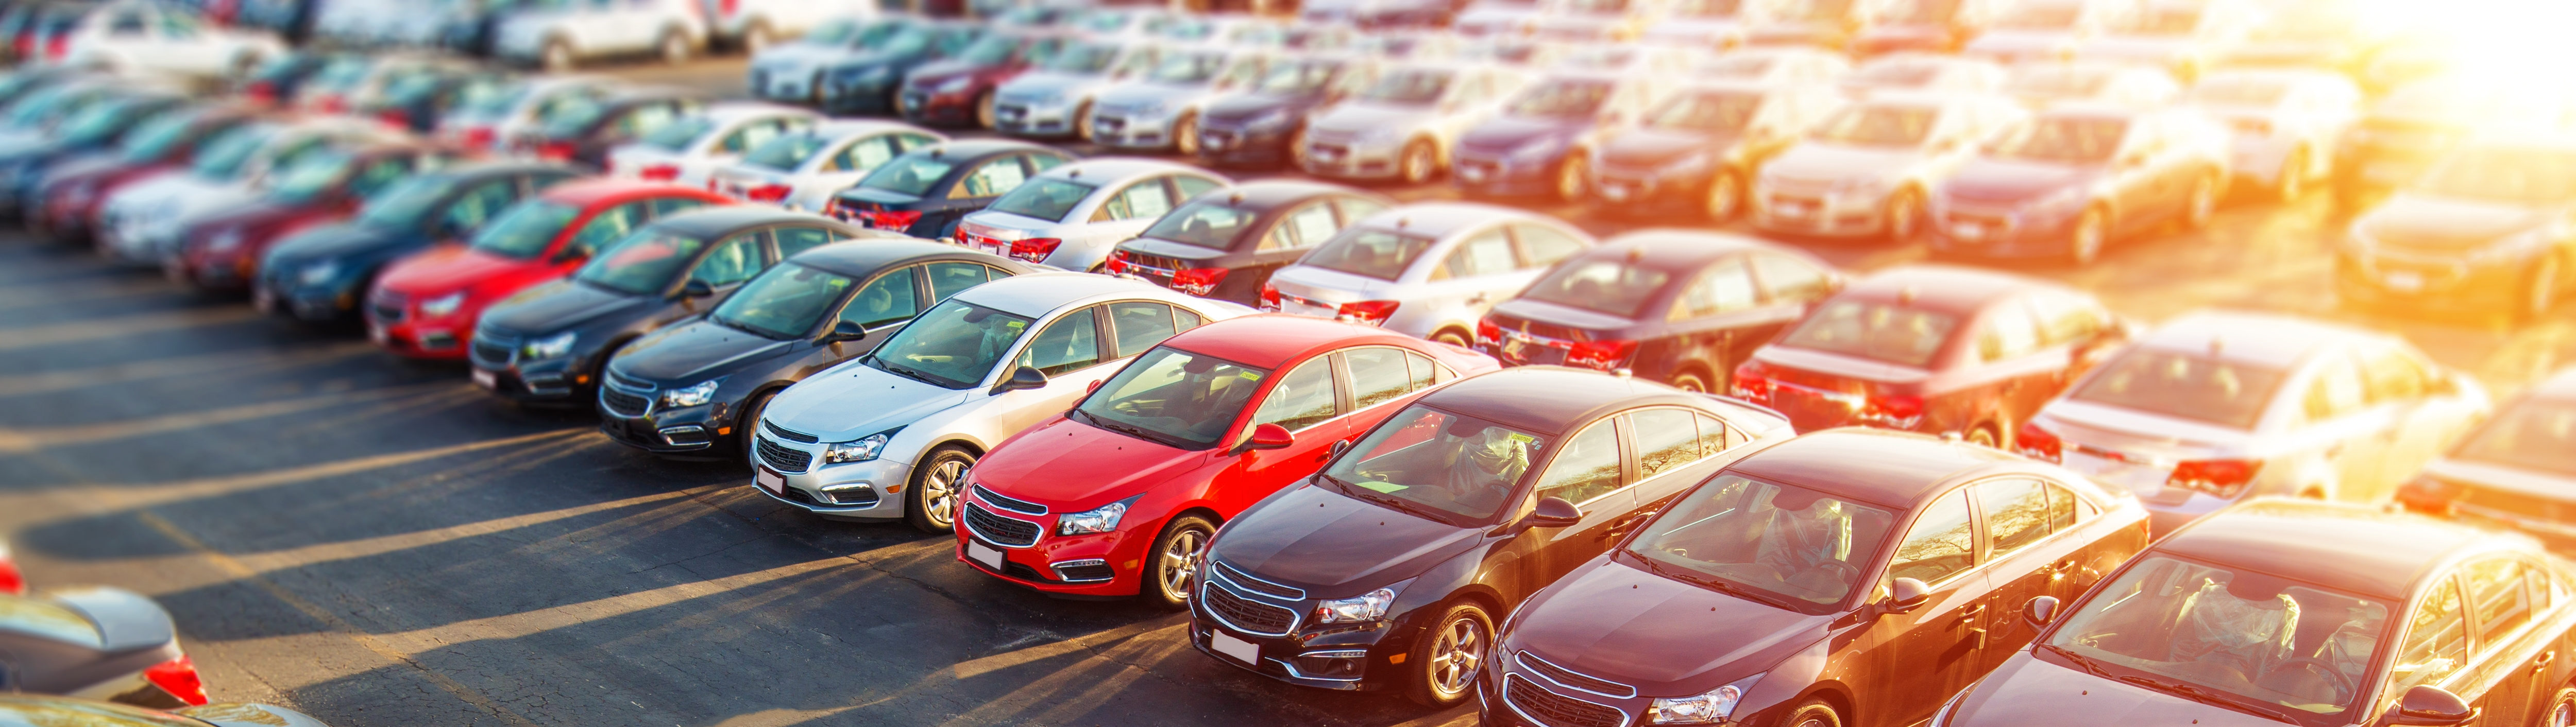 Pre-owned vehicles for customers to choose from